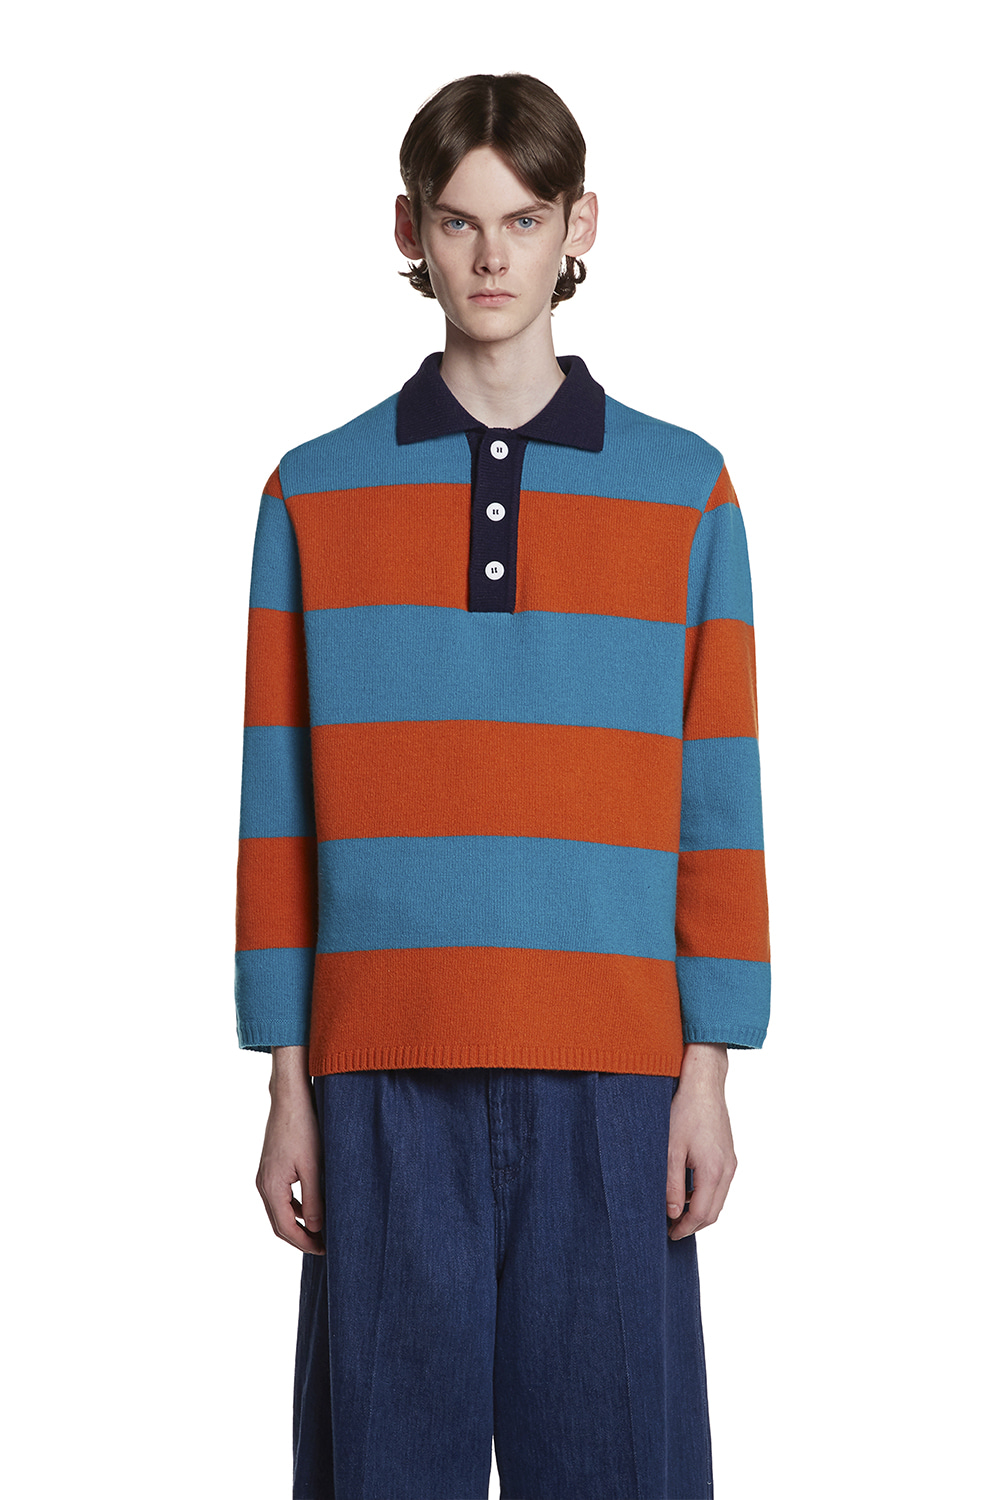 Stripe Knit PK Shirt